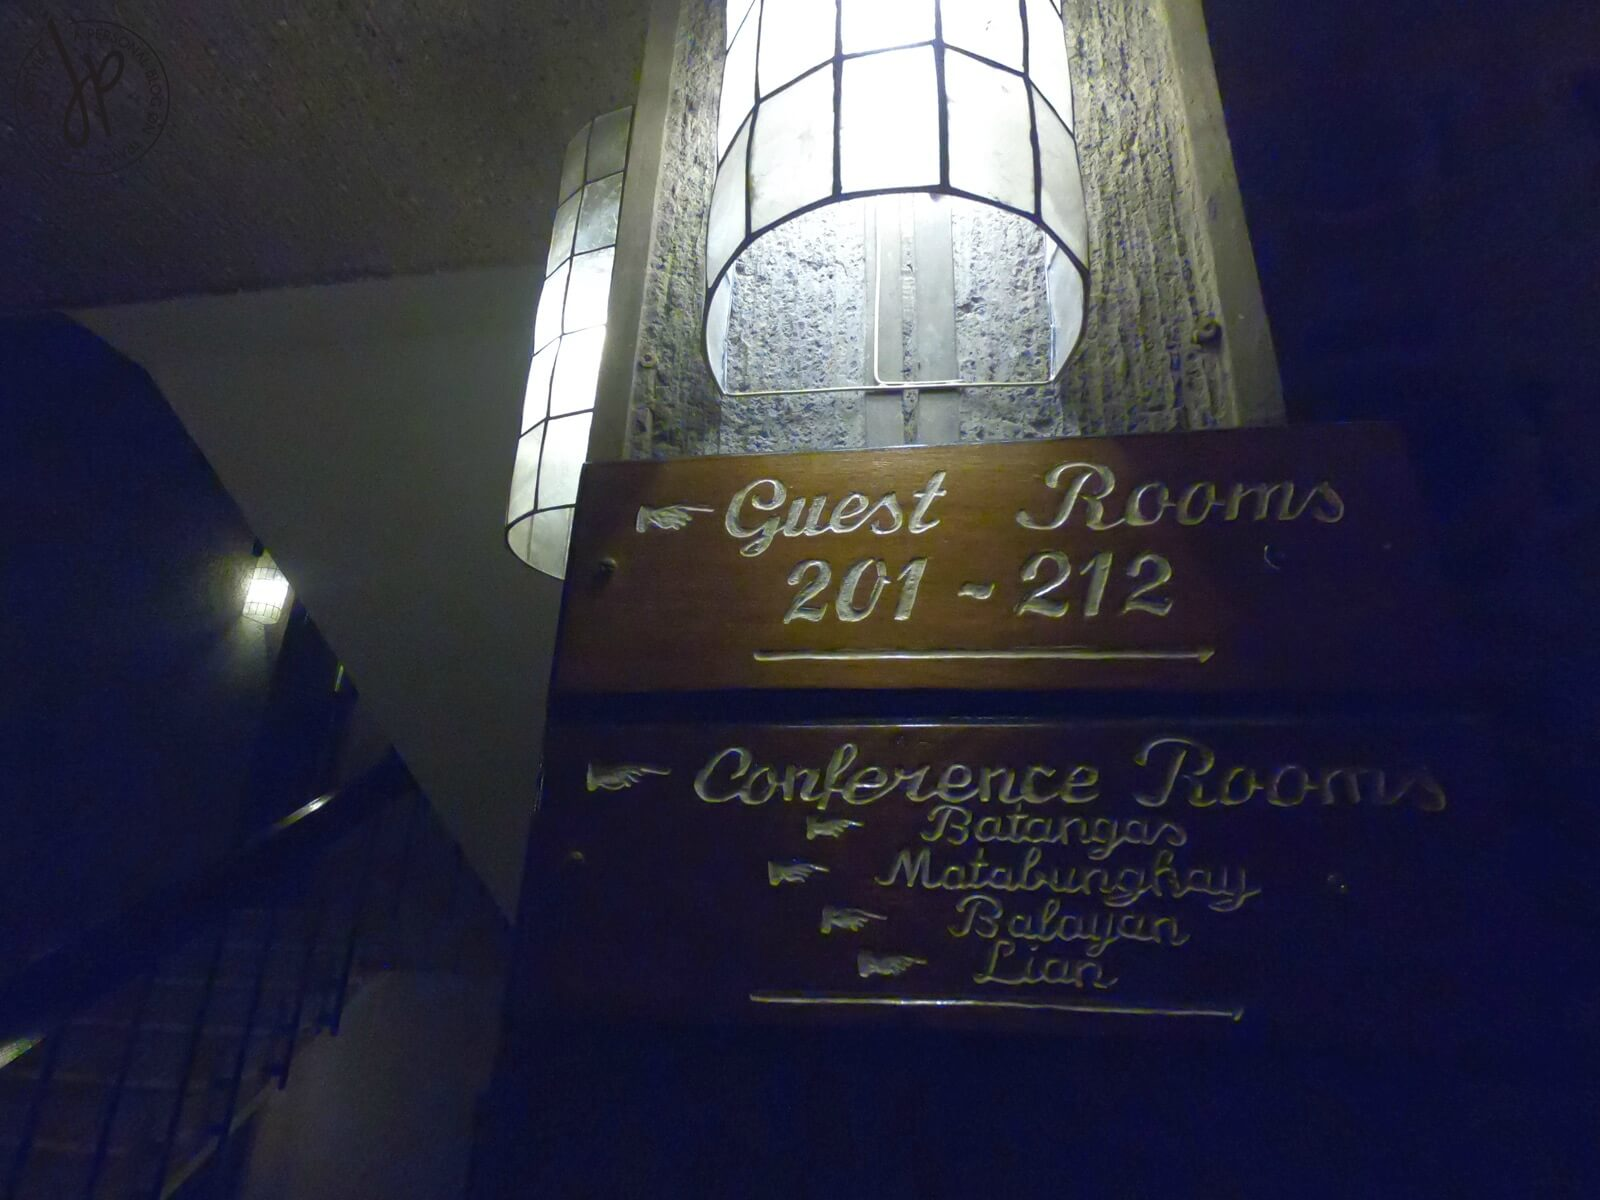 room signage, lamps